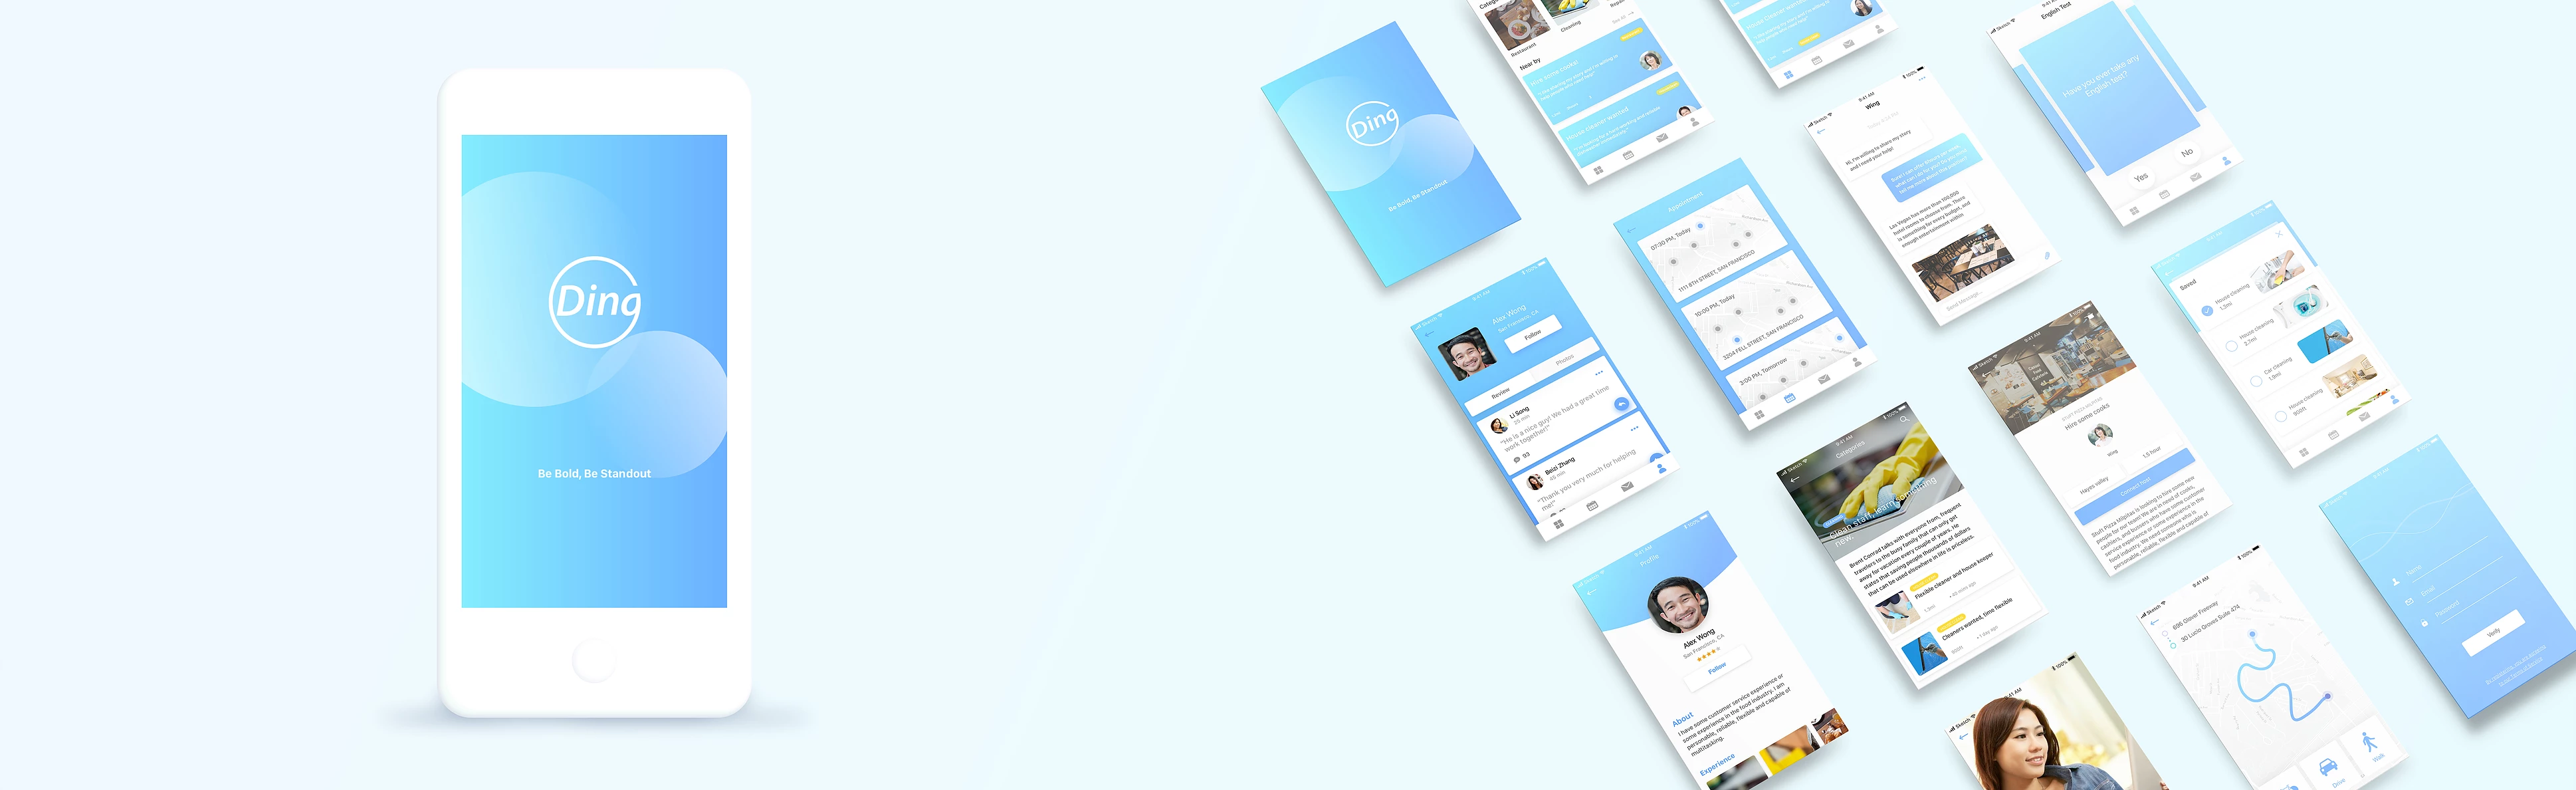 Ding UX design case study - UX Collective